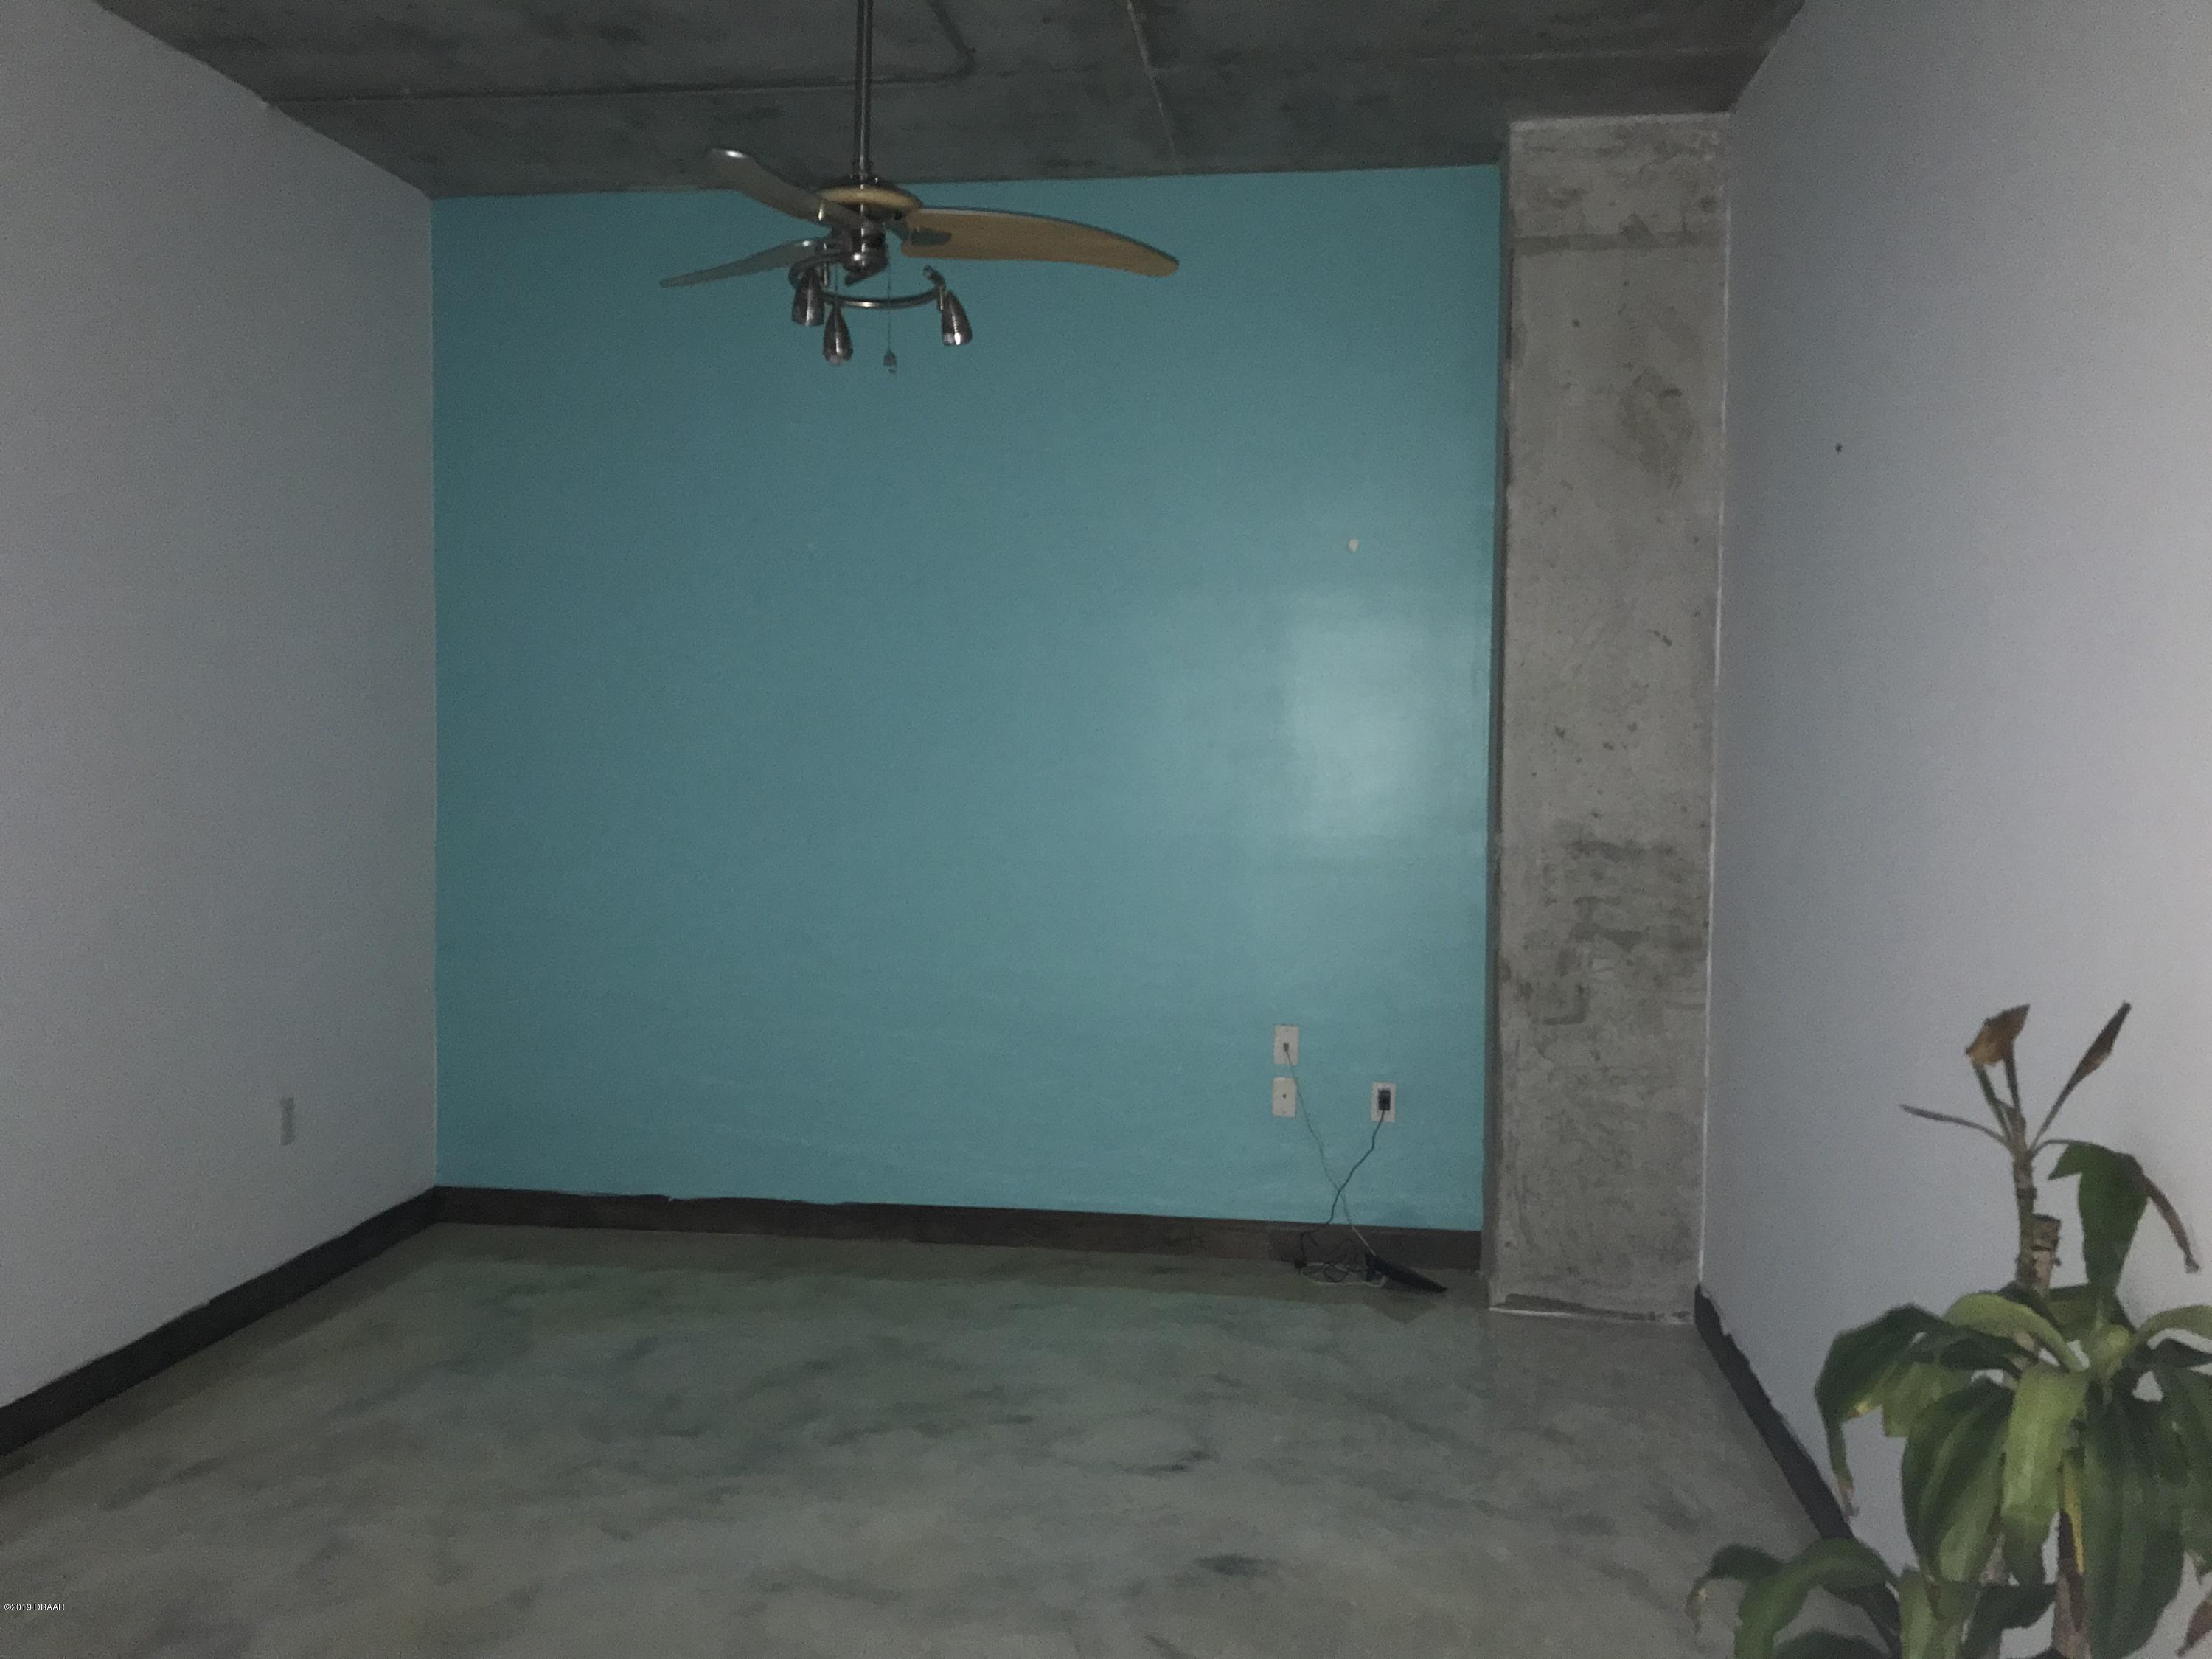 208 Wall Daytona Beach - 6